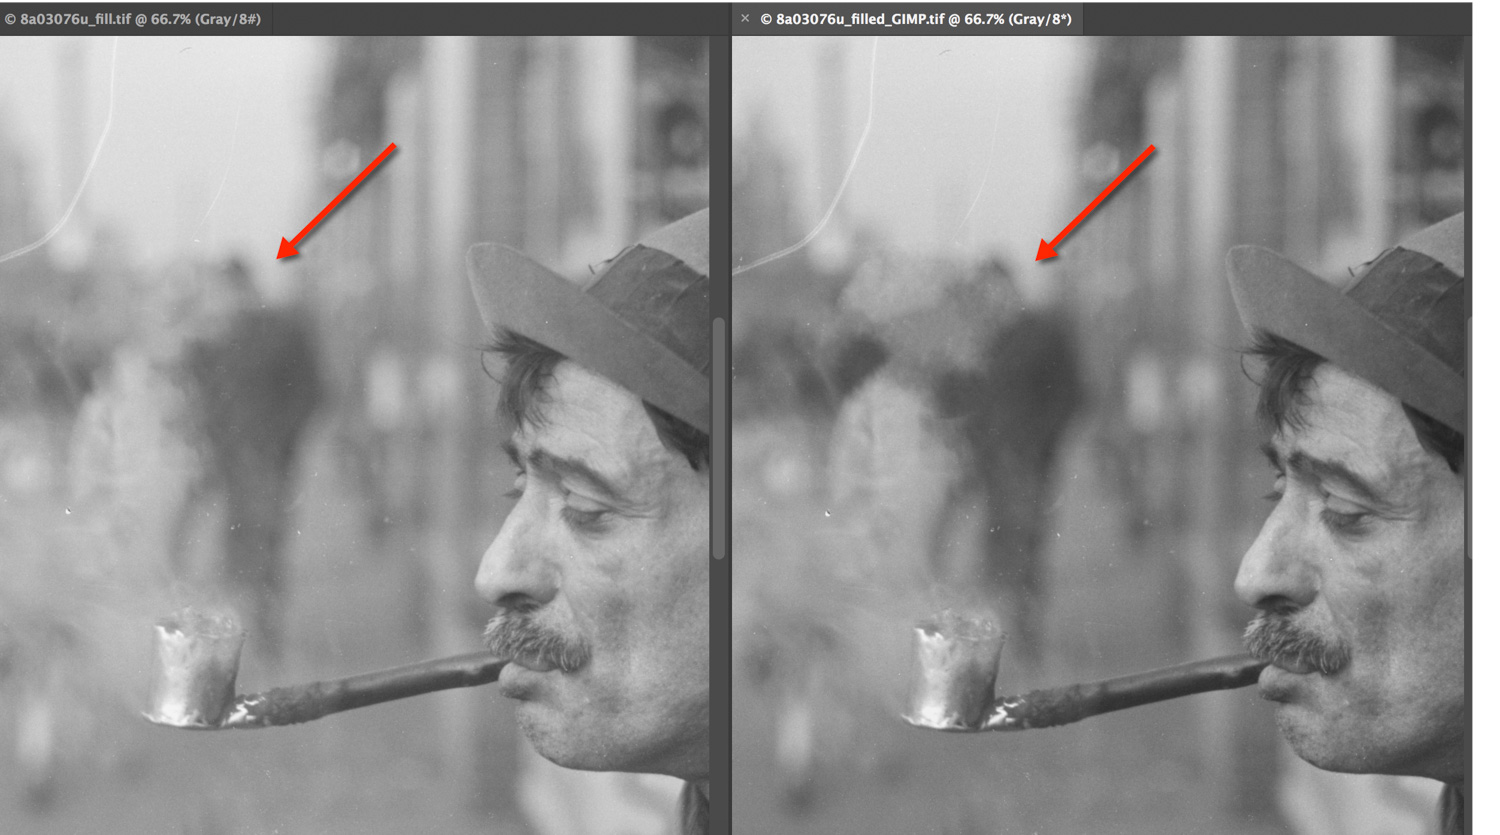 A comparison of how well Photoshop and GIMP healed the hole in two shadowy heads in the background of Figure 16.